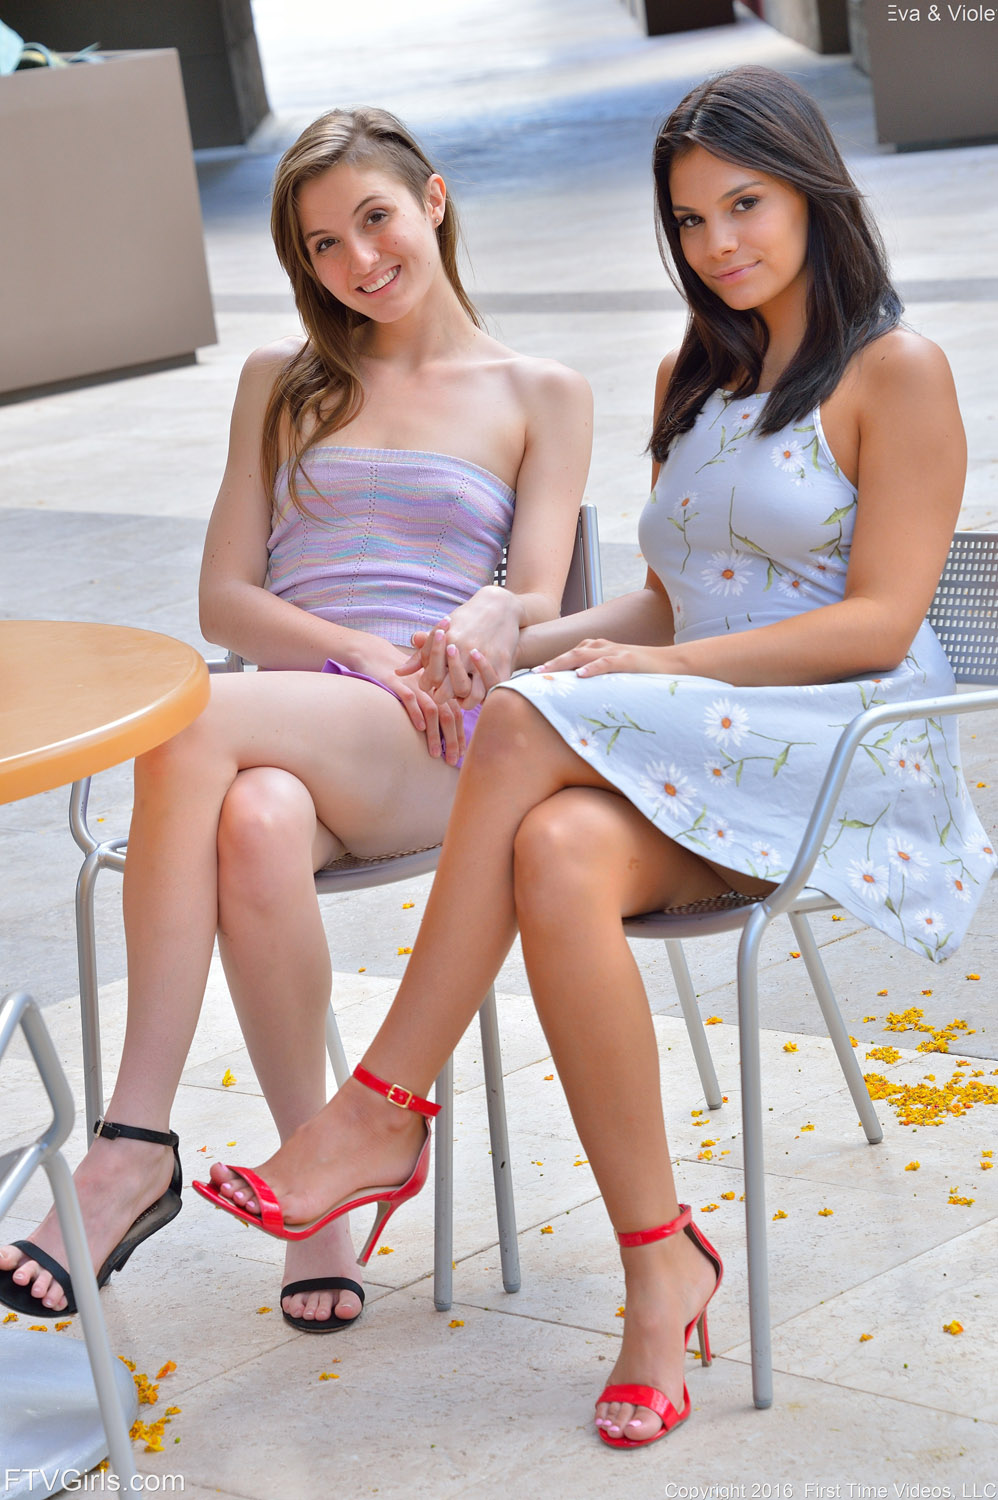 Ftv girls eva